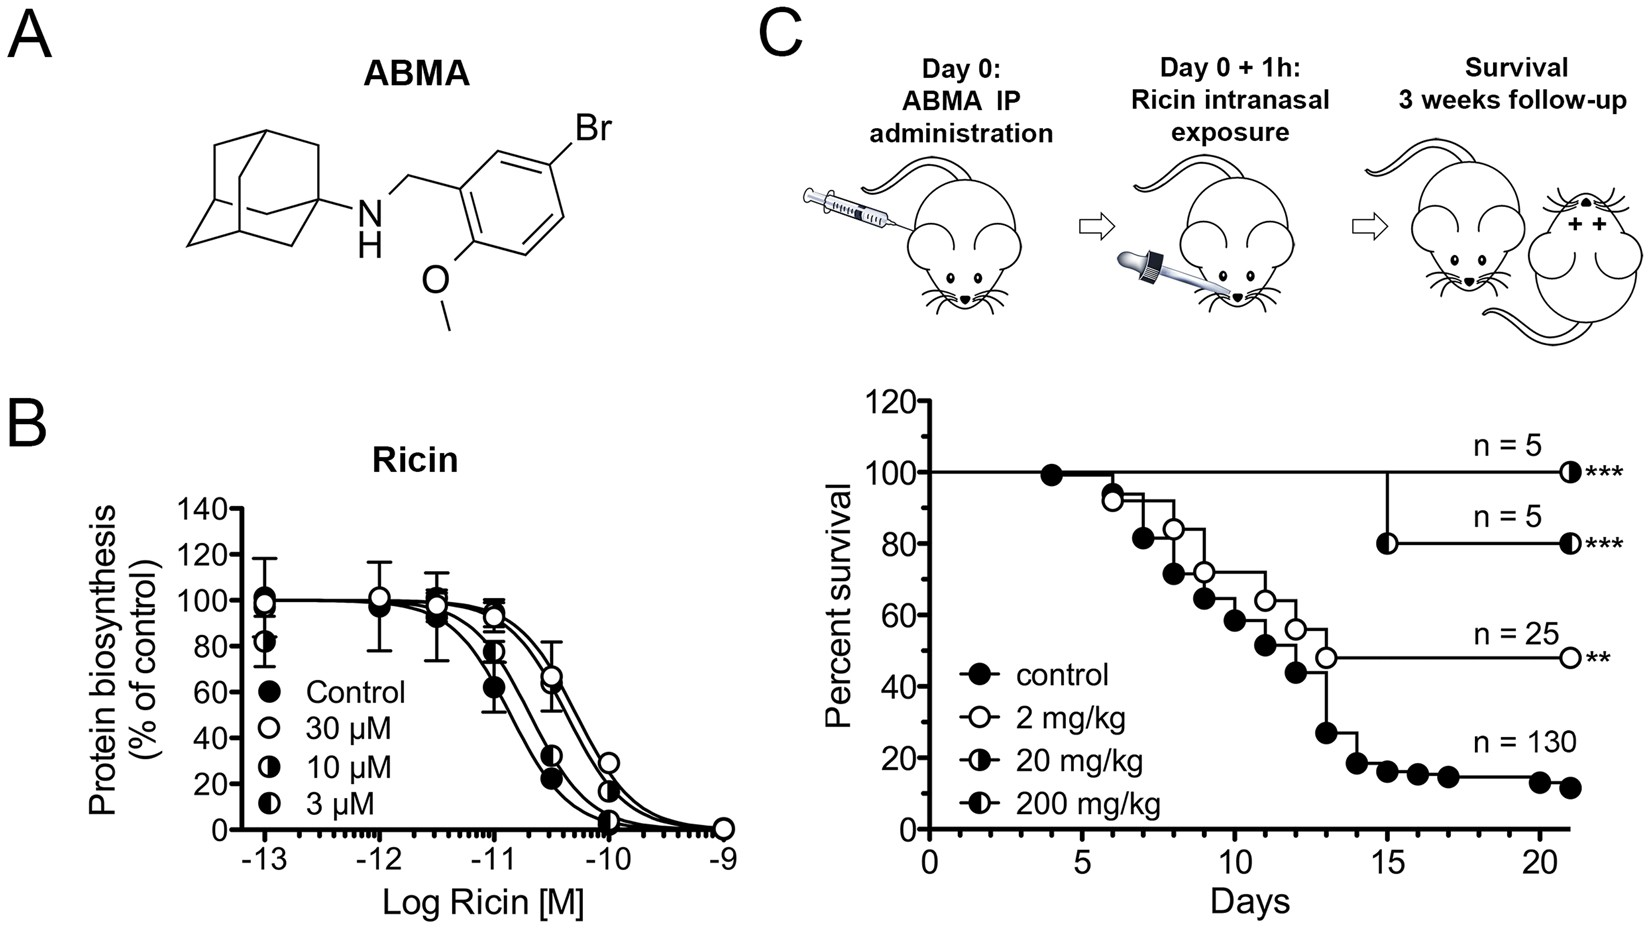 Abma A Small Molecule That Inhibits Intracellular Toxins And 2001 Audi Canada Ur S6 Main Fuse Box Diagram Pathogens By Interfering With Late Endosomal Compartments Scientific Reports